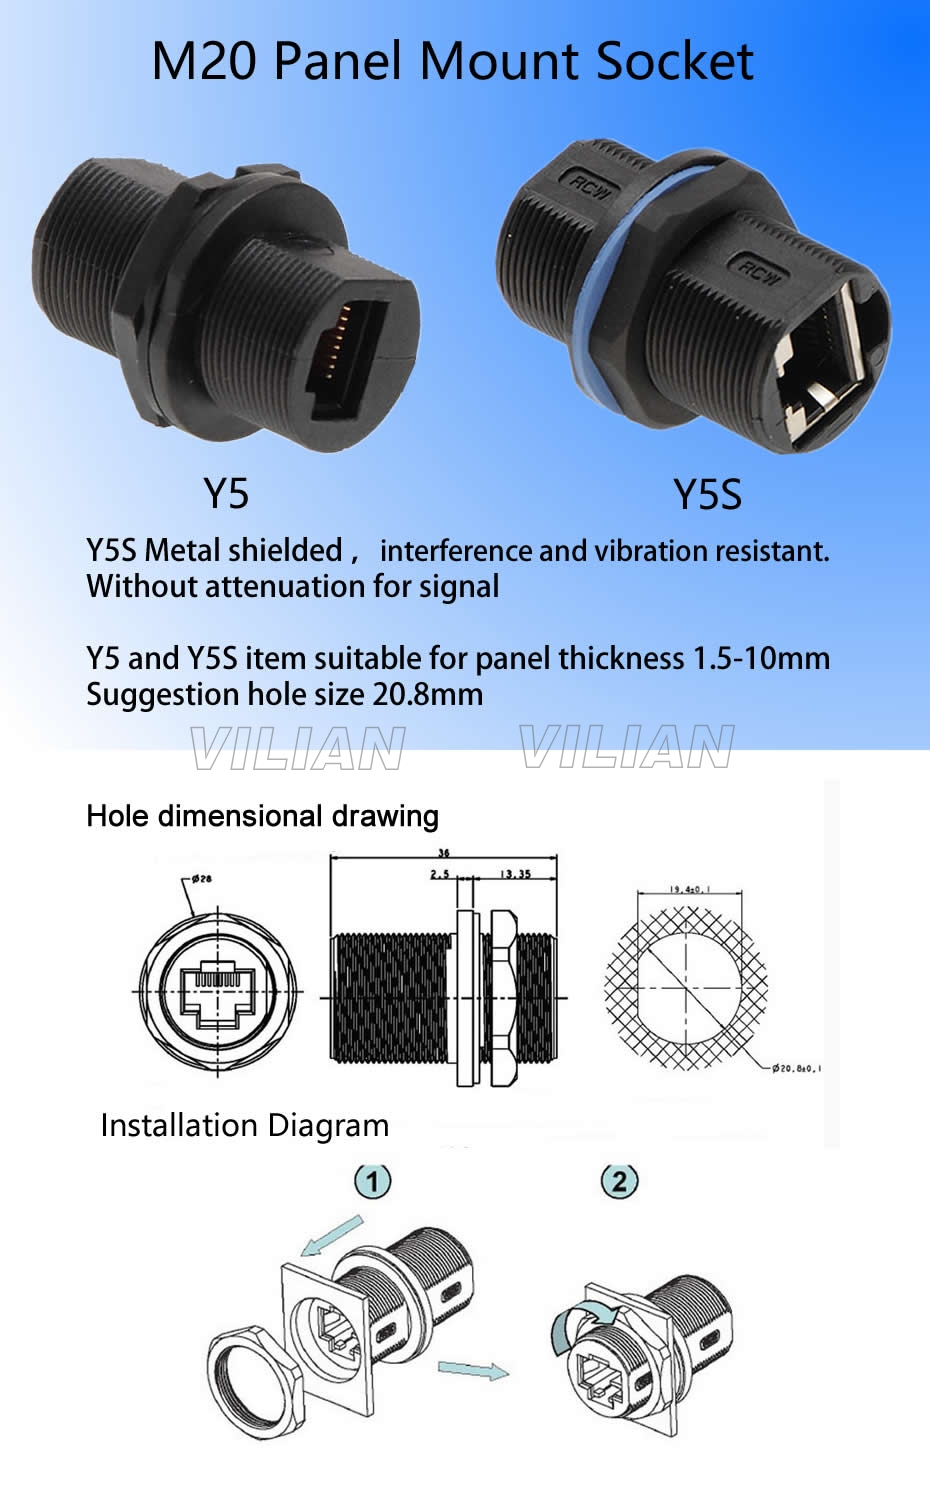 Grade A Quality Rj45 Shielded Panel Mount Connector Ap Box Adapter Wiring Diagram Network Cable Extension Socket Free Shipping 1unit